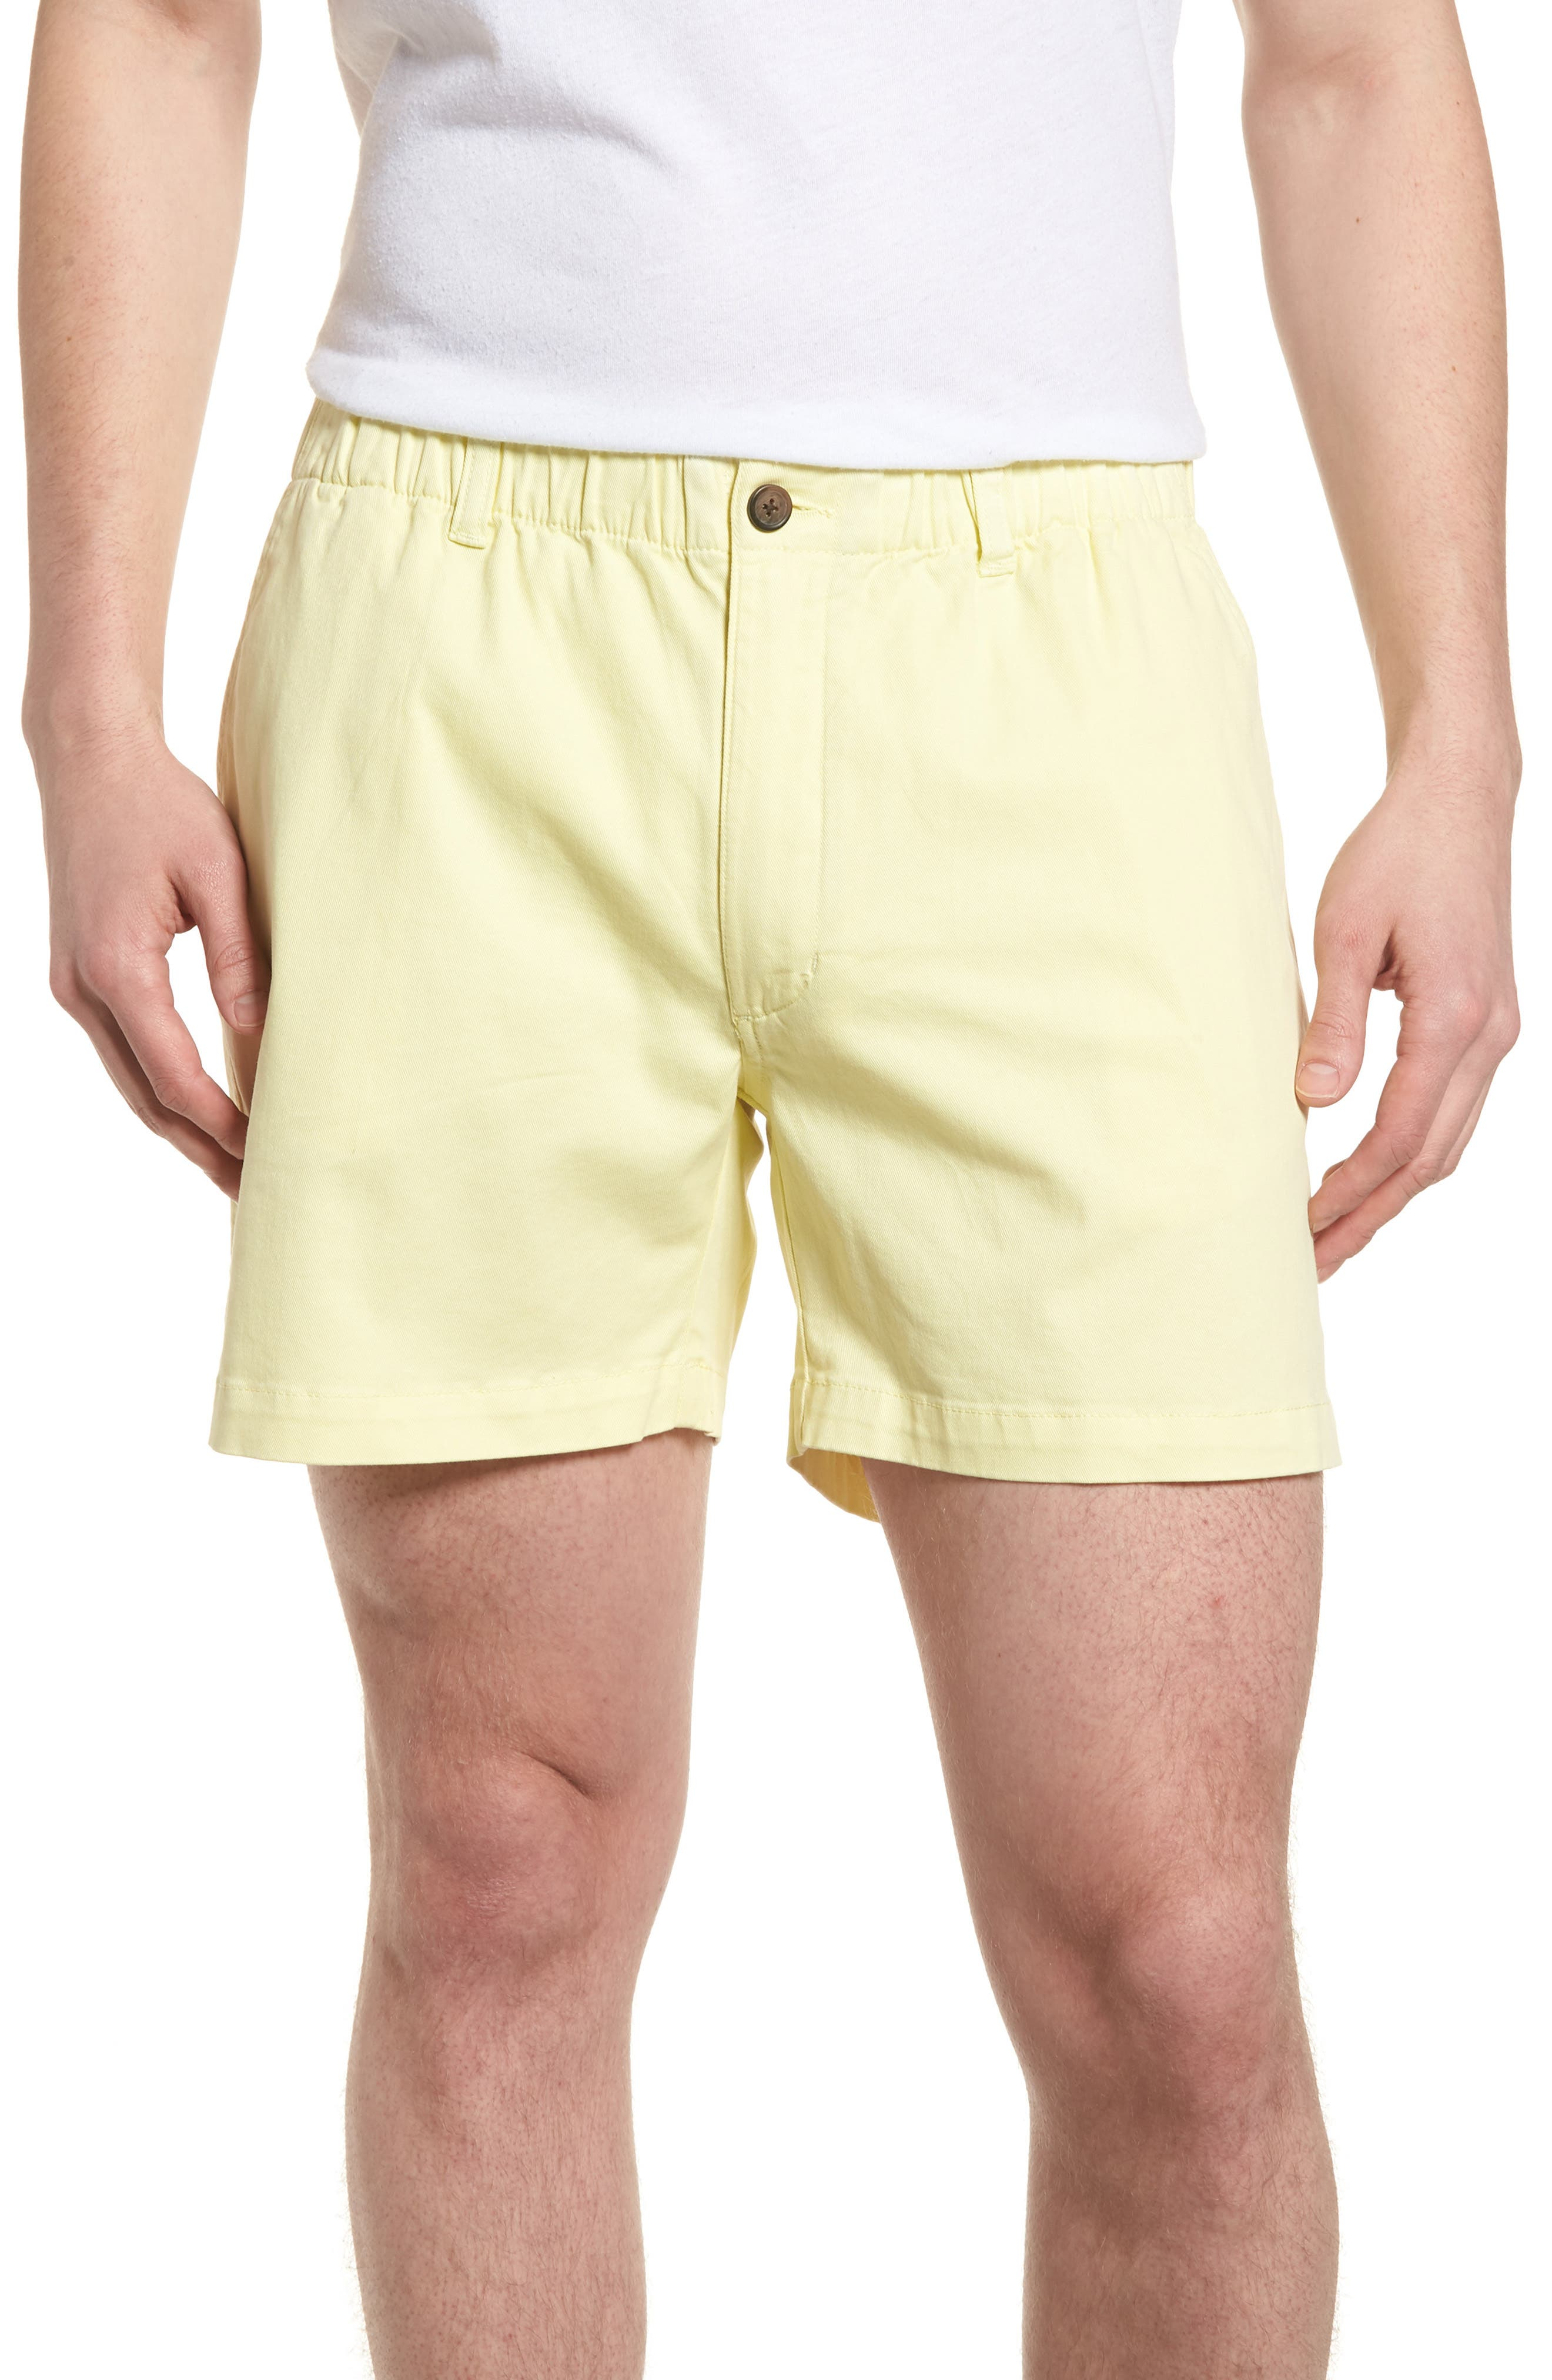 Vintage Style Mens Shorts Mens Vintage 1946 Snappers Elastic Waist Shorts Size XX-Large - Yellow $55.00 AT vintagedancer.com